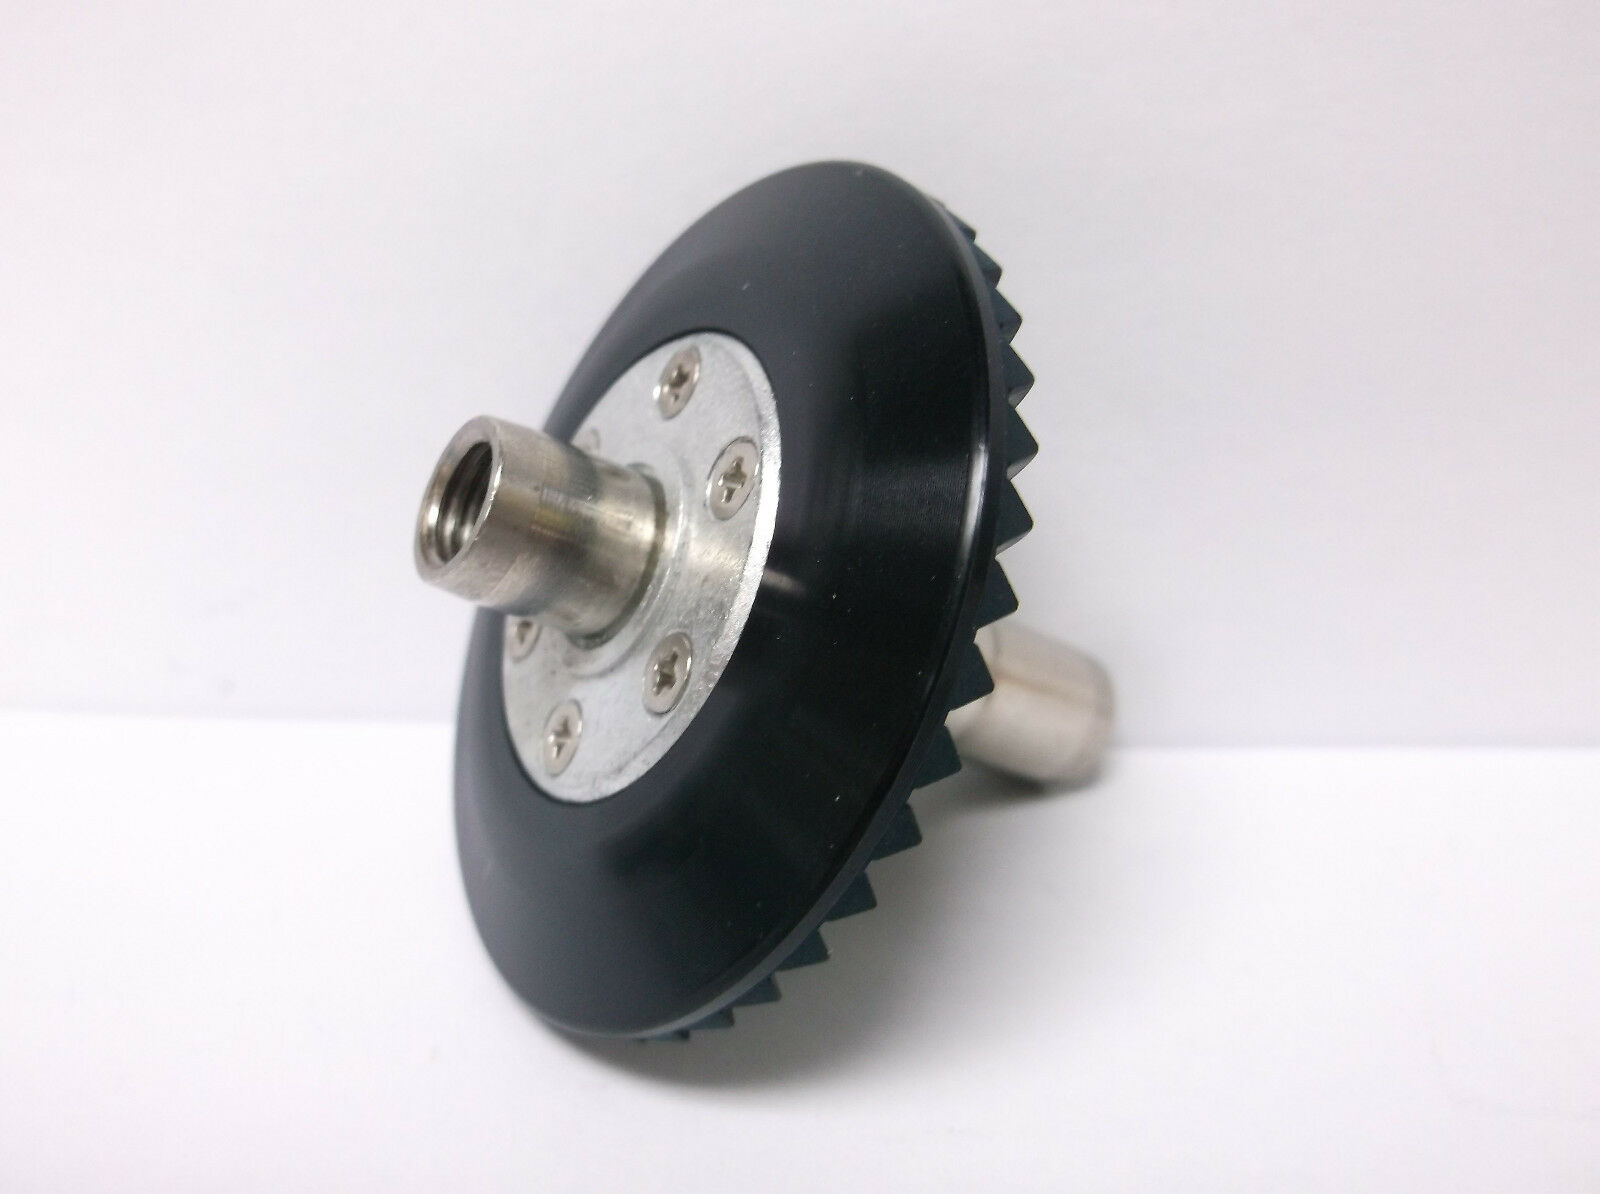 1 Shimano Part RD 0757 or RD 0690 Drive Gear Washer Fits Spheros 12000FA/&14000FA